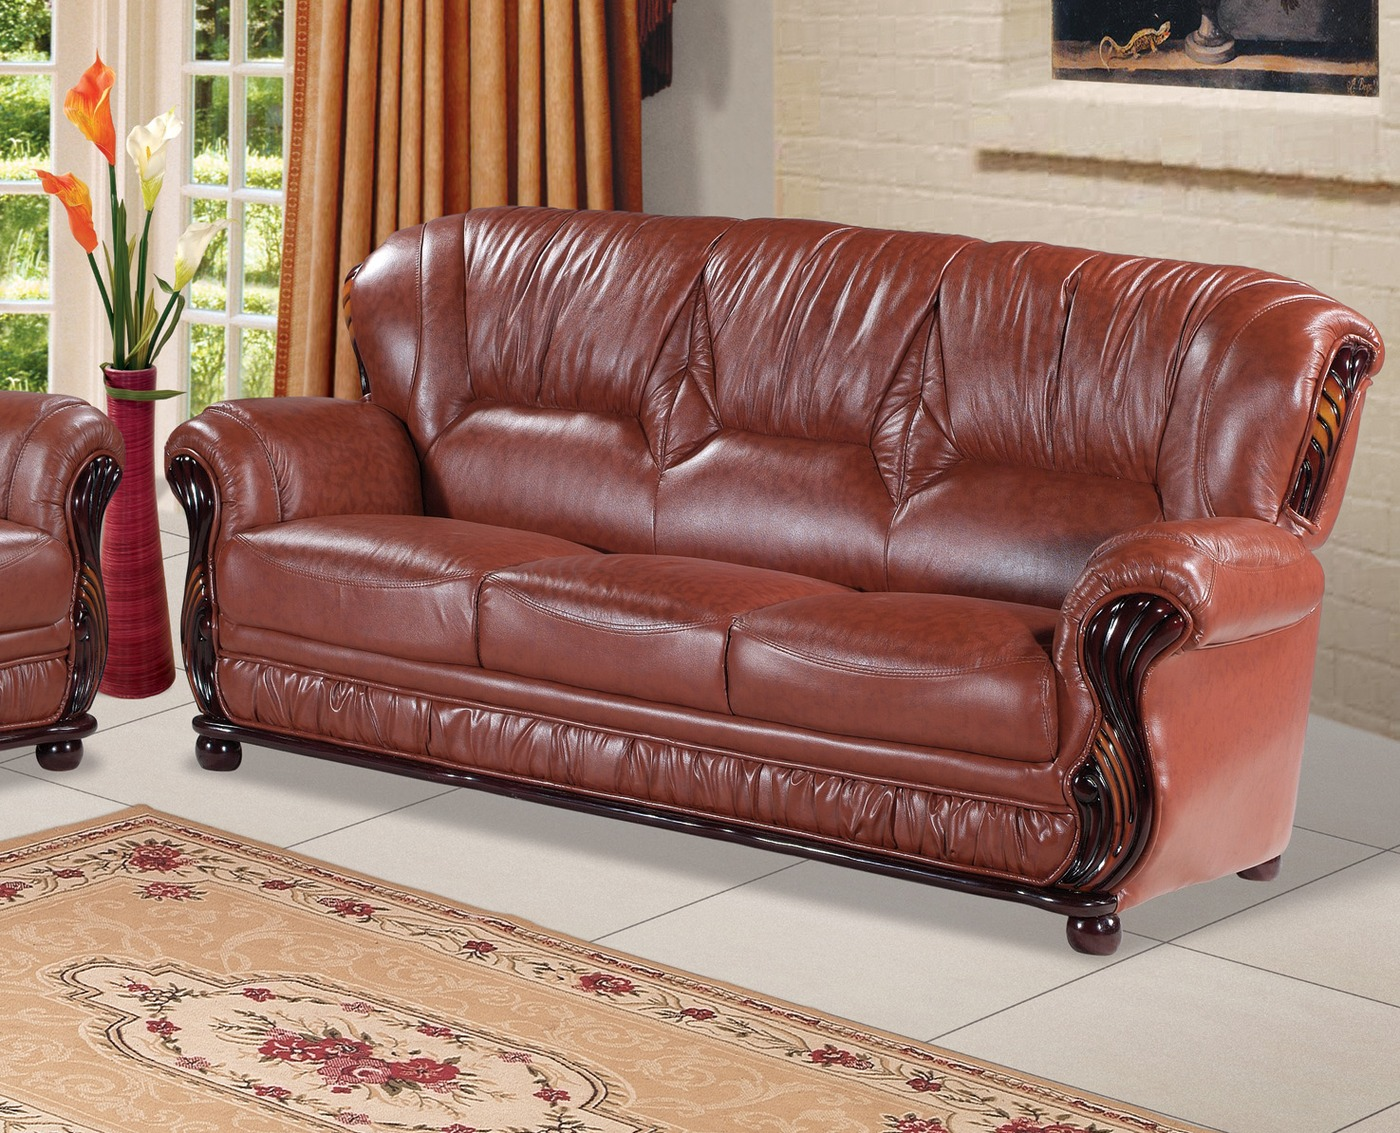 Mina Caramel Brown Leather Italian Sofa With Wood Accents